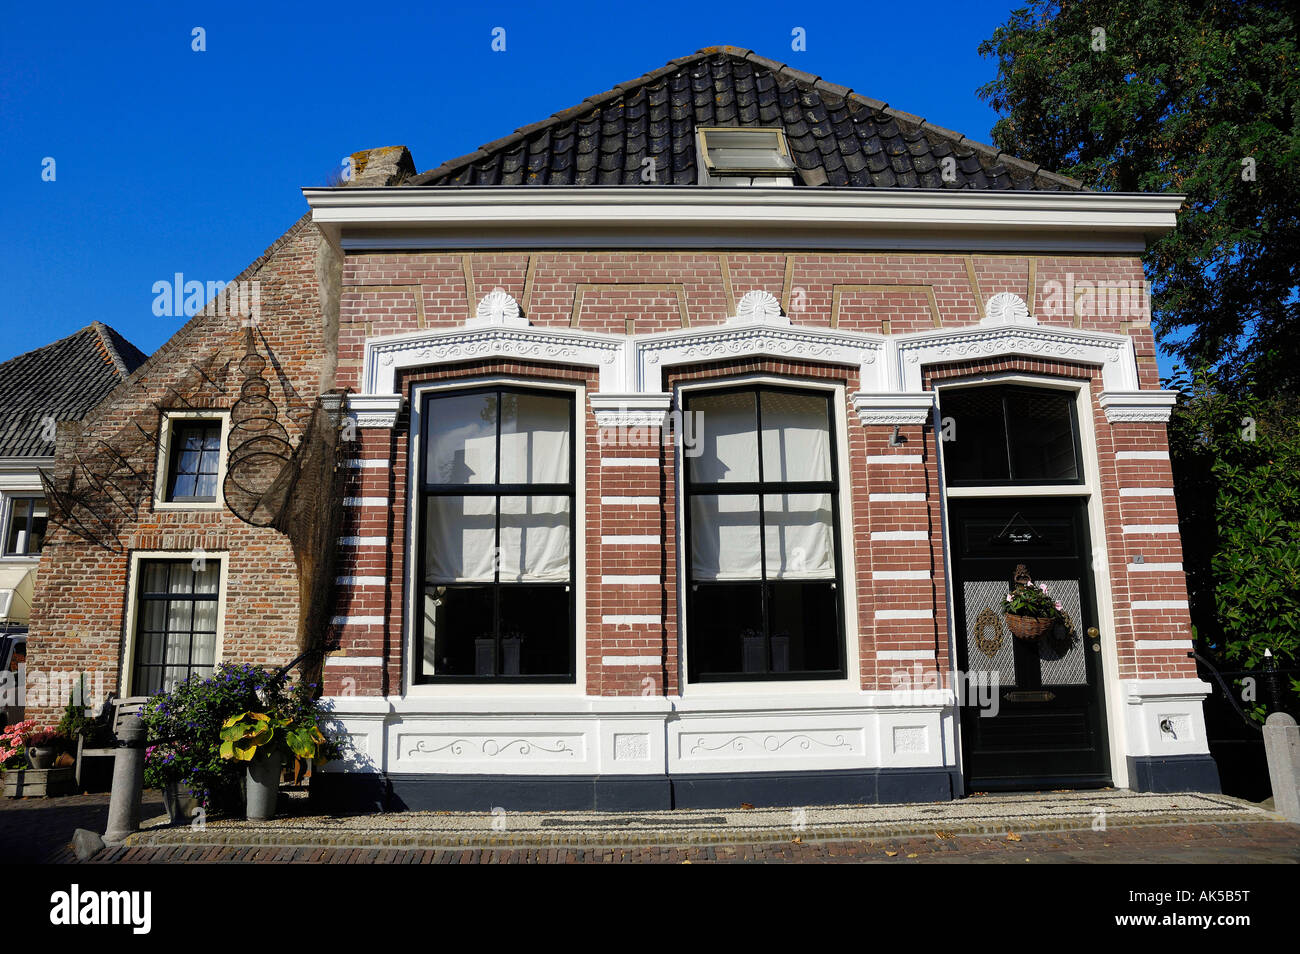 House, Elburg - Stock Image